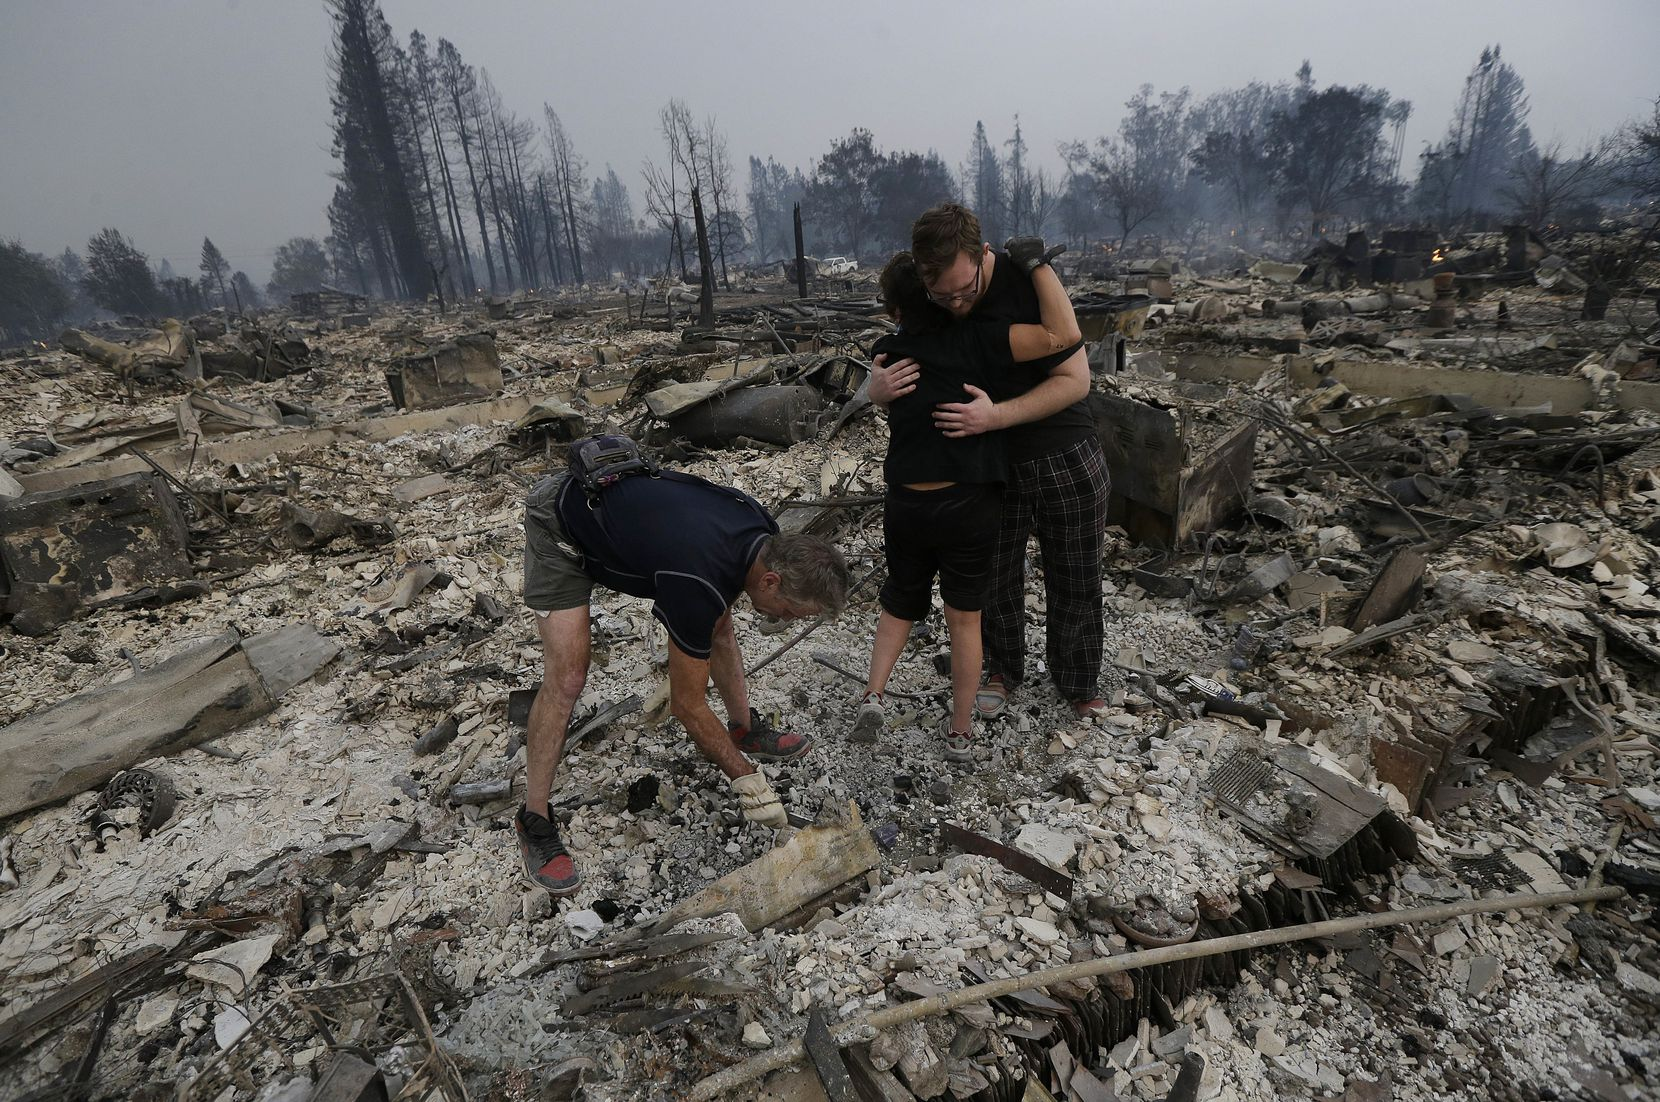 Michael Pond, left, looks through ashes as his wife Kristine, center, gets a hug from Zack Thurston, their daughter's boyfriend, while they search the remains of their home destroyed by fires in Santa Rosa, Calif., Monday, Oct. 9, 2017.